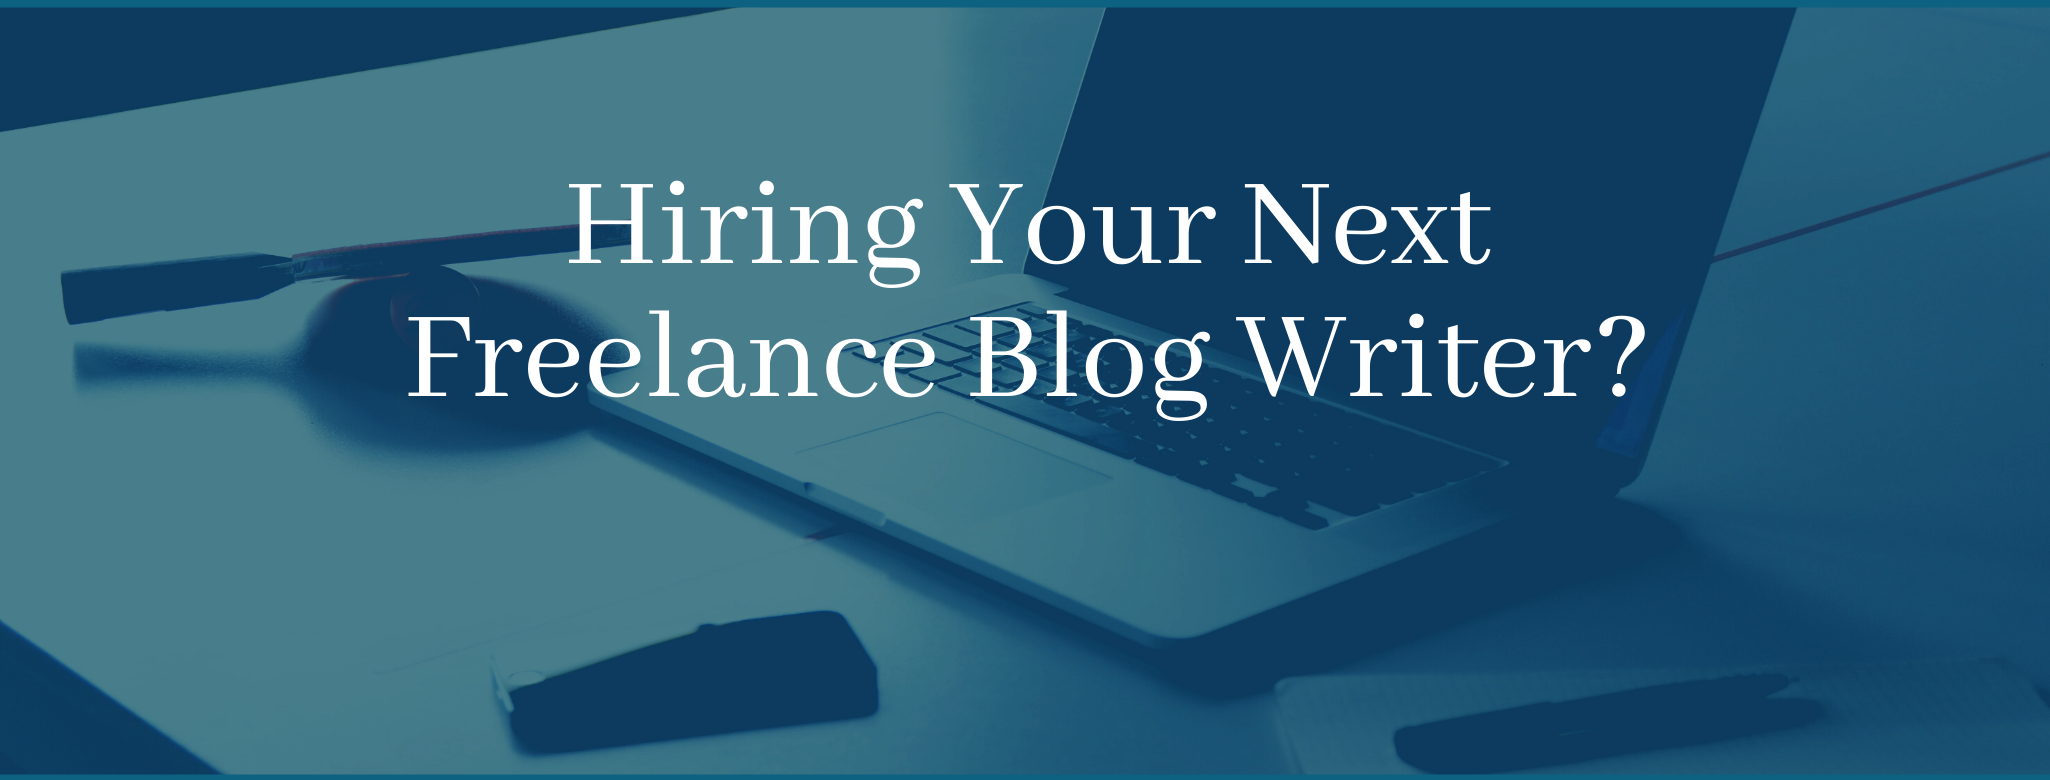 How to Hire Quality Freelance Blog Writers